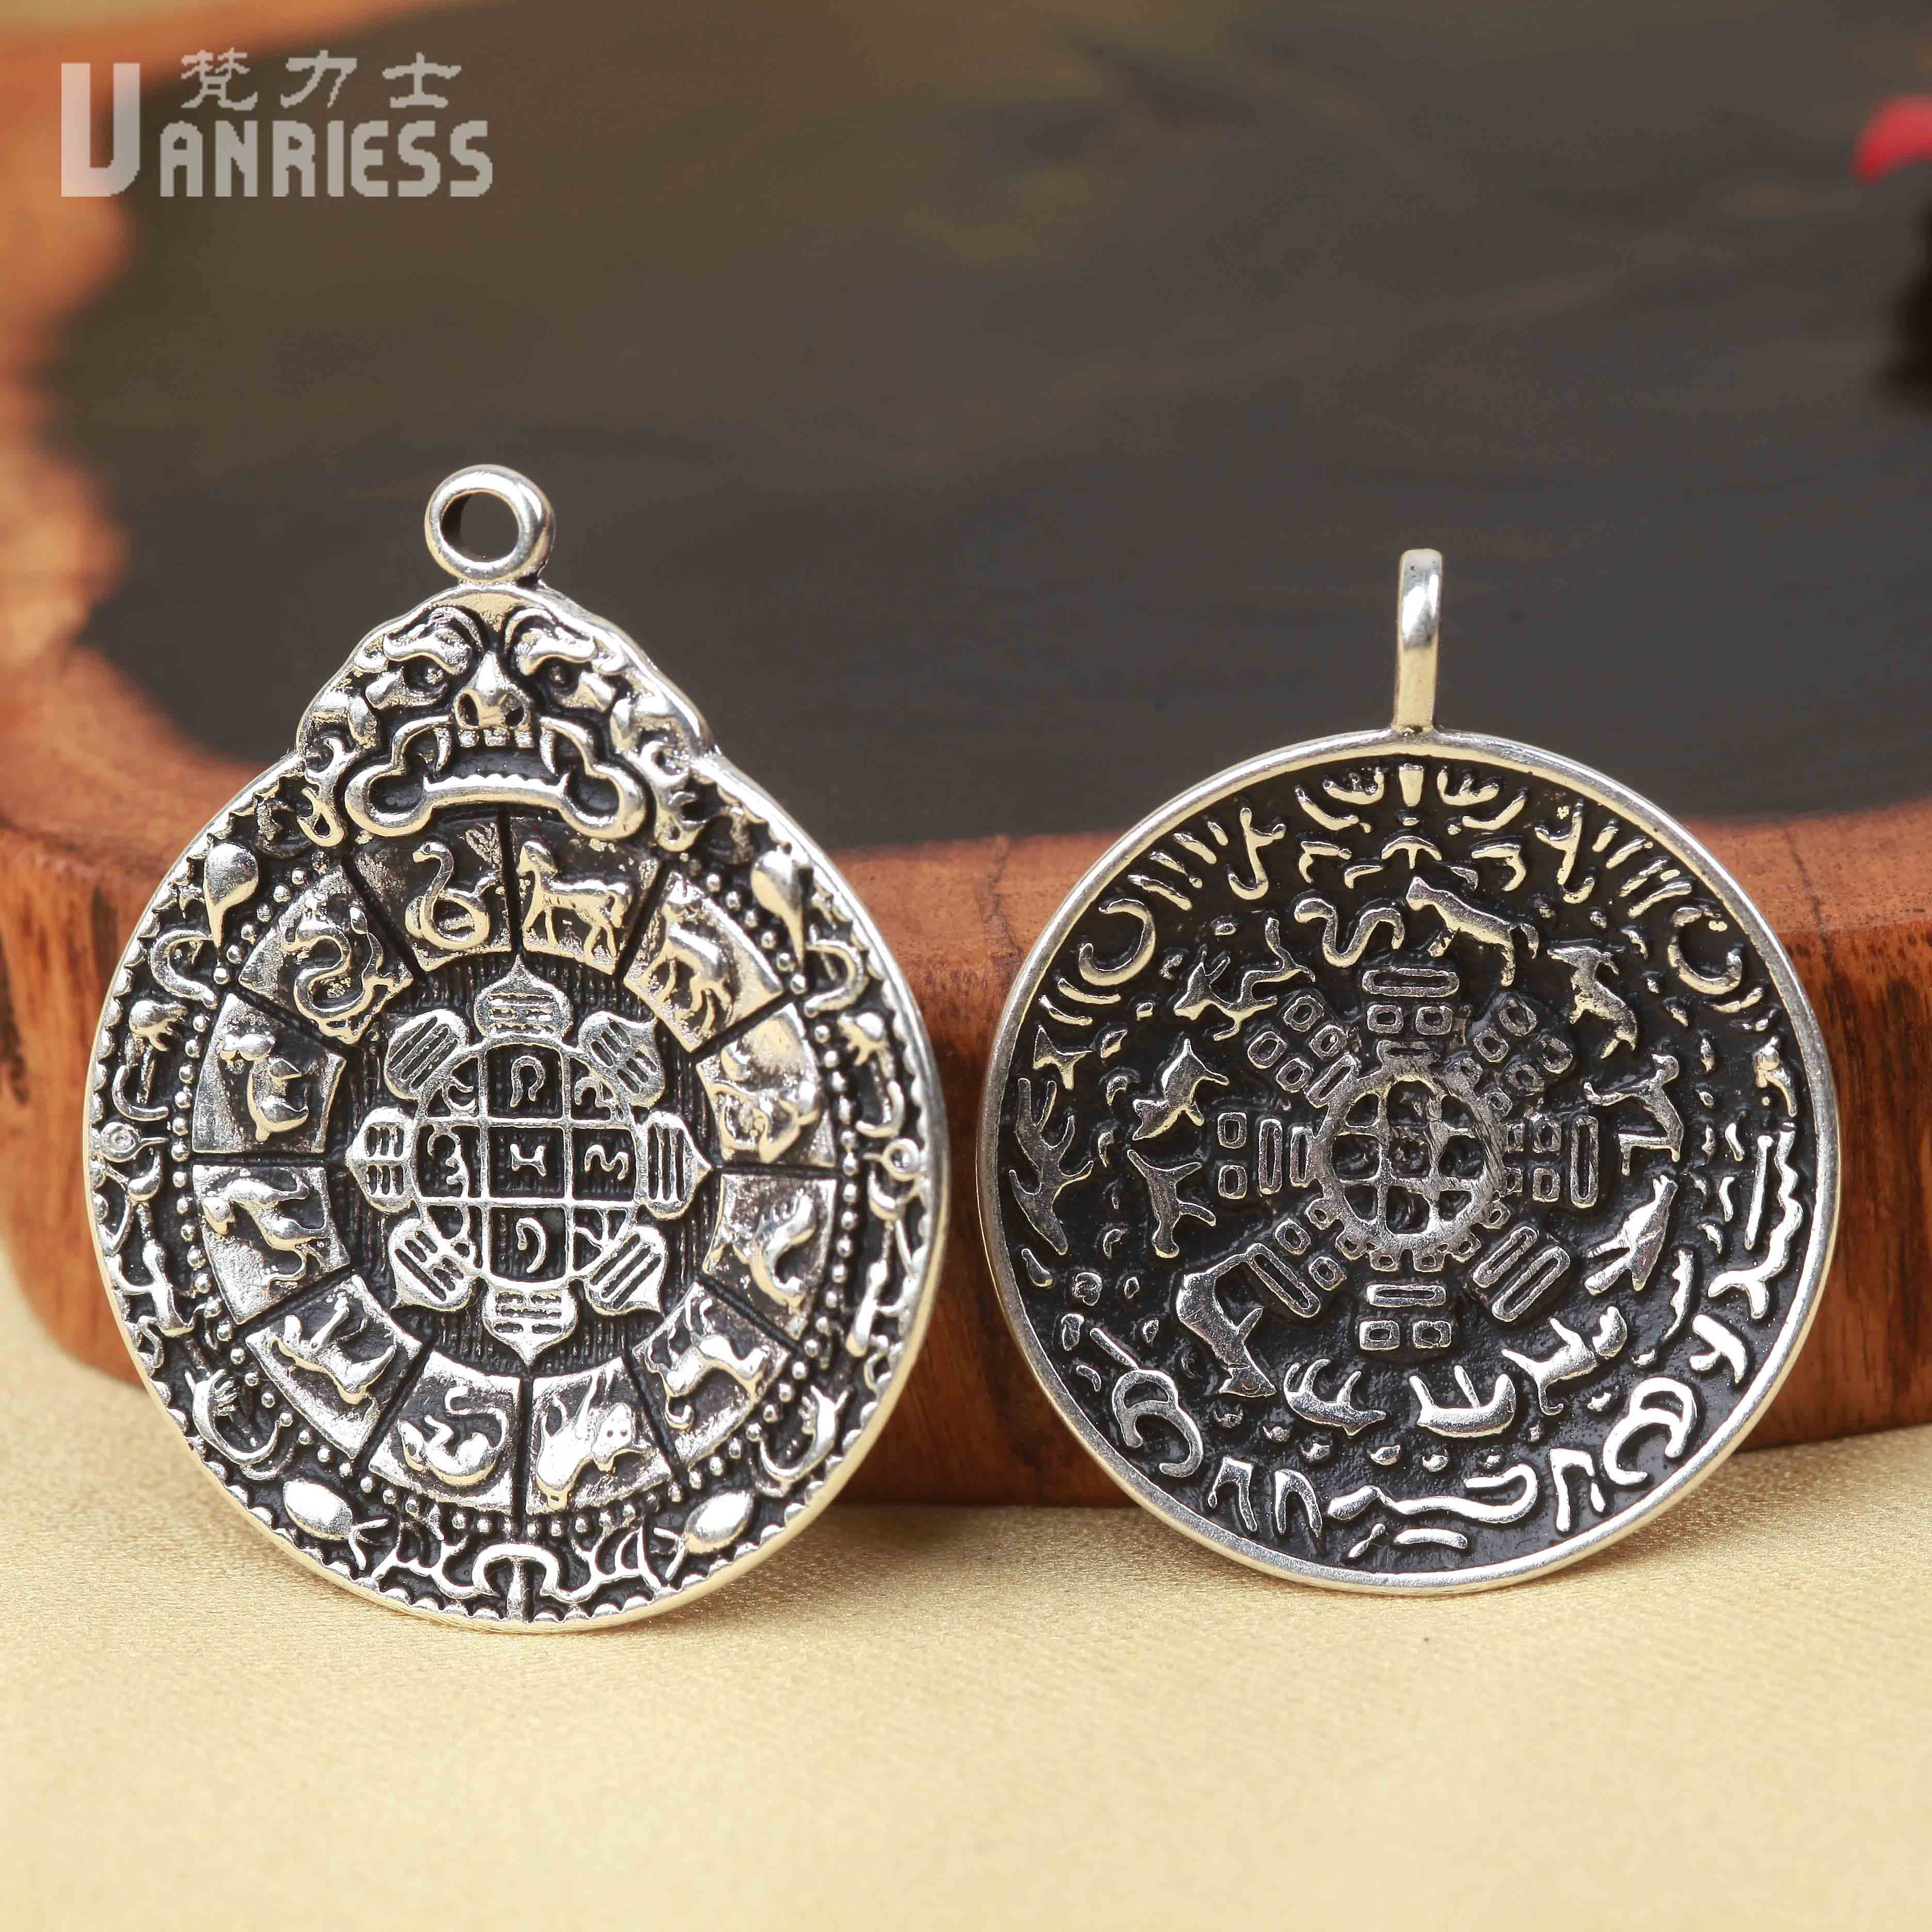 Vatican lux combined gold and silver jiugongbagua tag pendant pendant tibetan prayer beads diy accessories bodhi bracelets jewelry